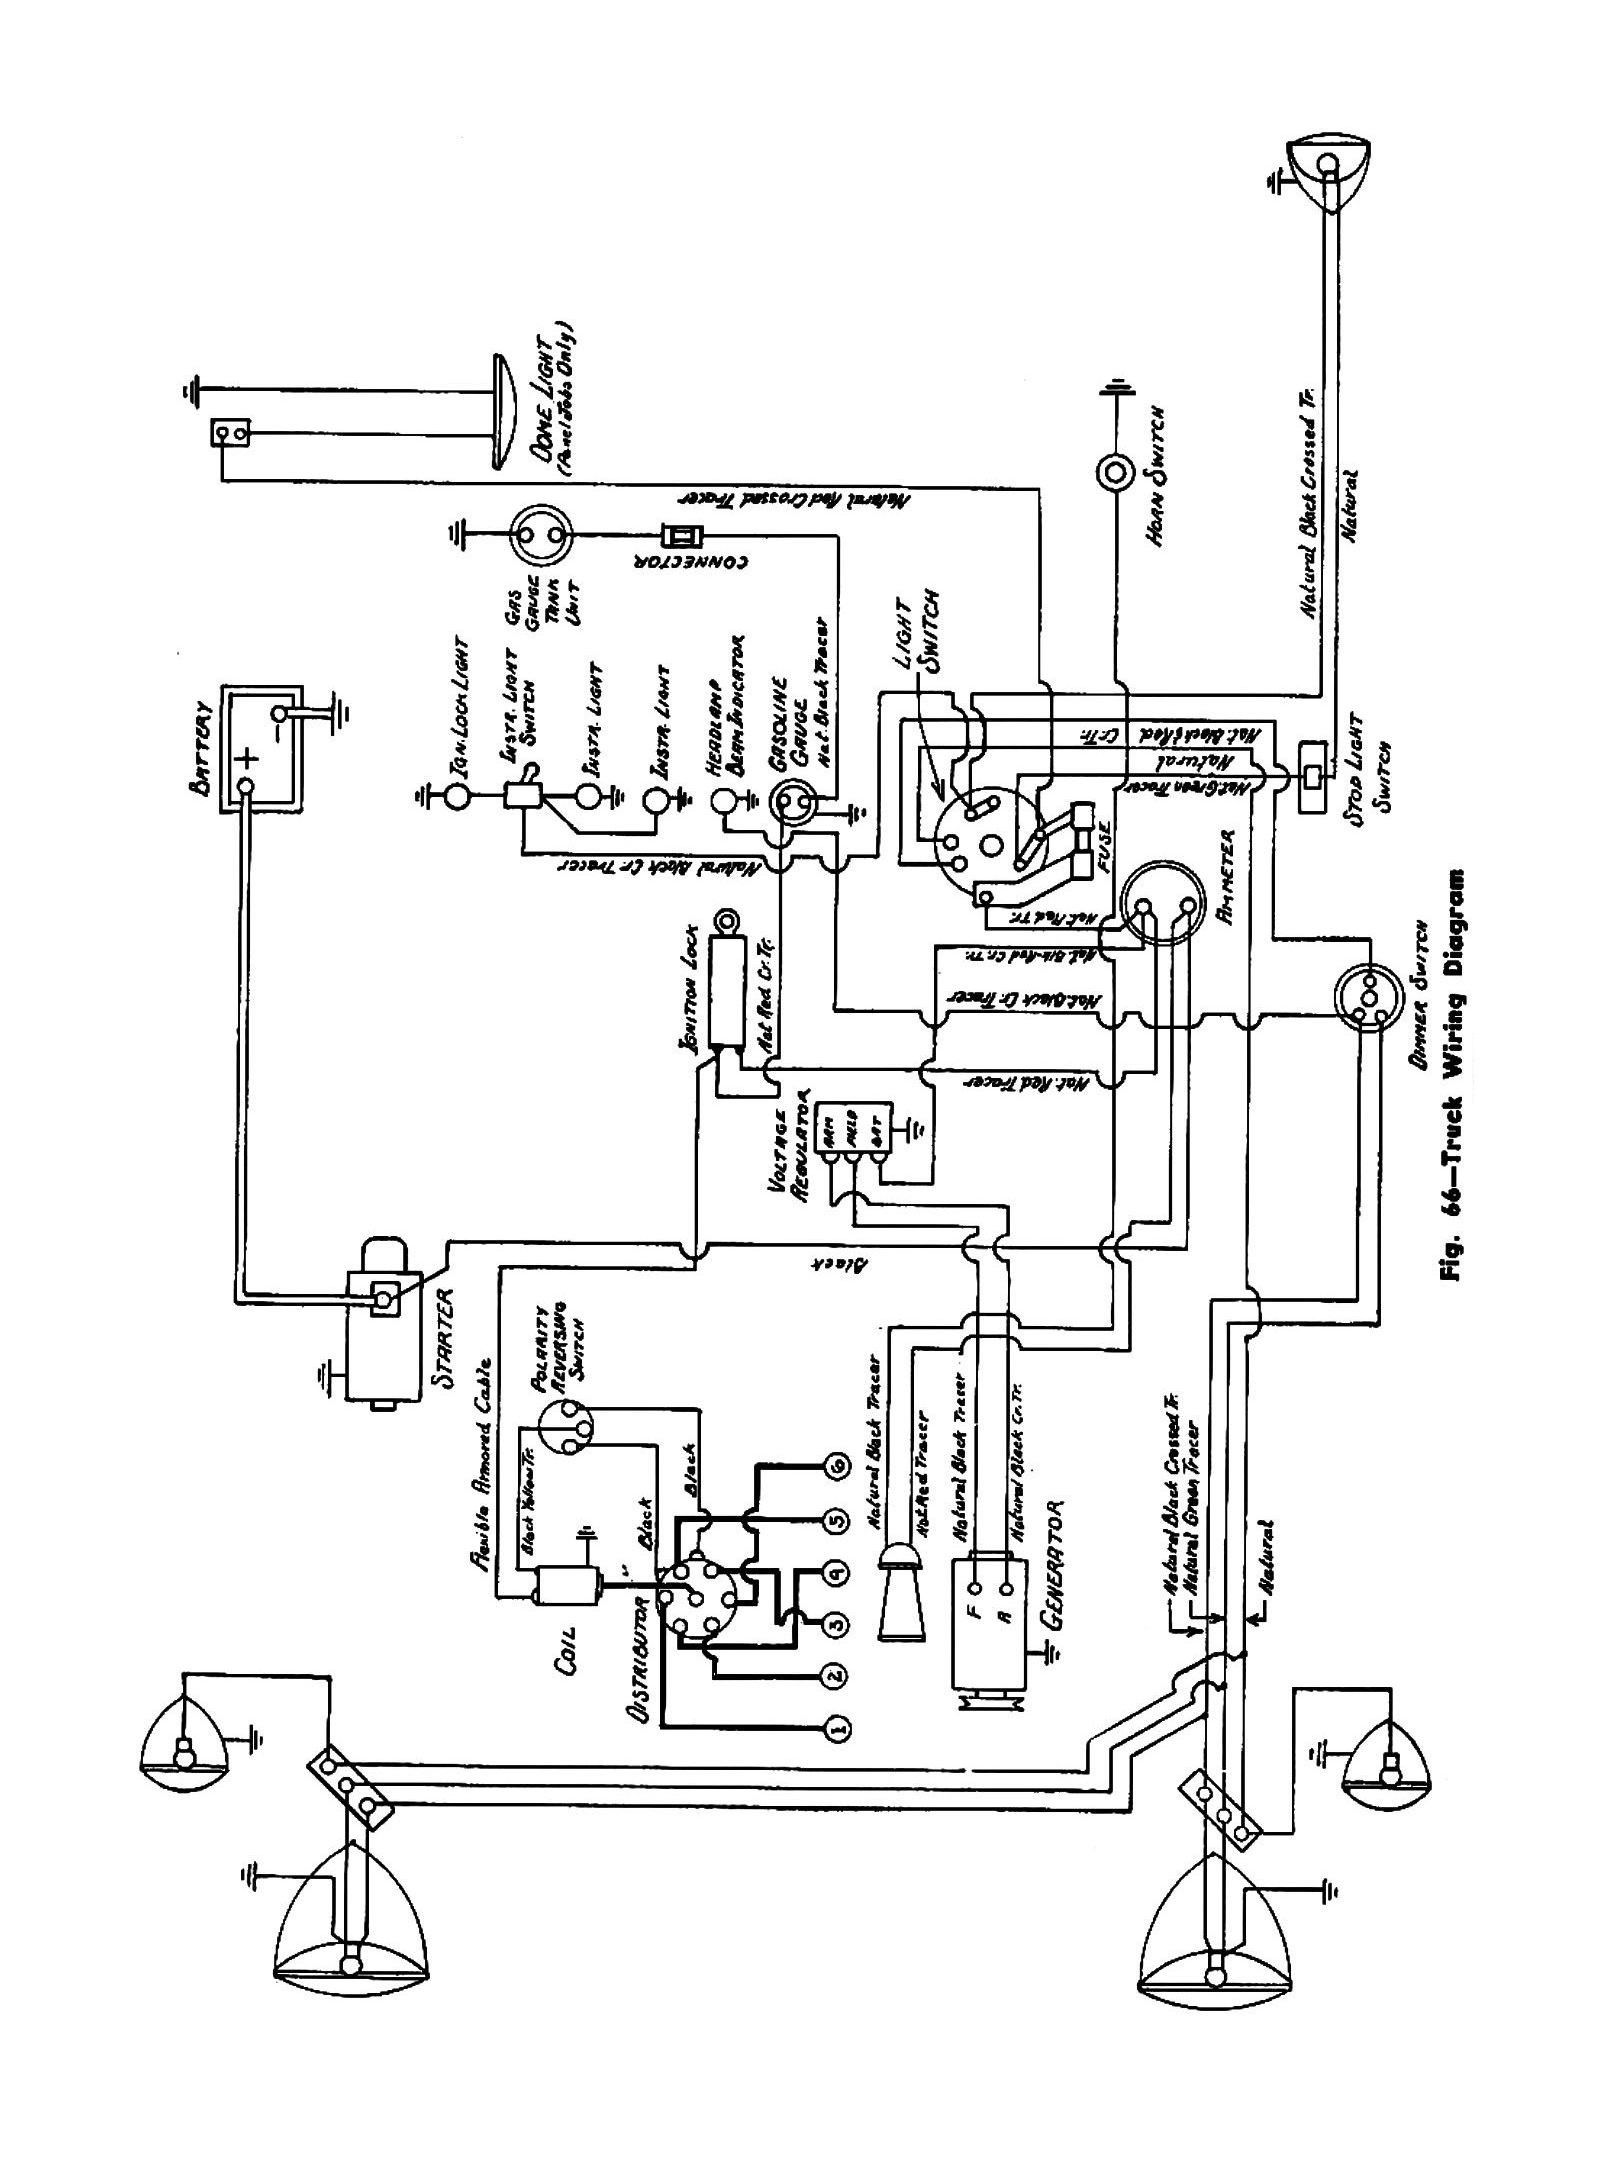 wiring diagram for 79 ford truck 45truck jpg  1600  2164  chevy trucks  1946 chevy truck  1949  chevy trucks  1946 chevy truck